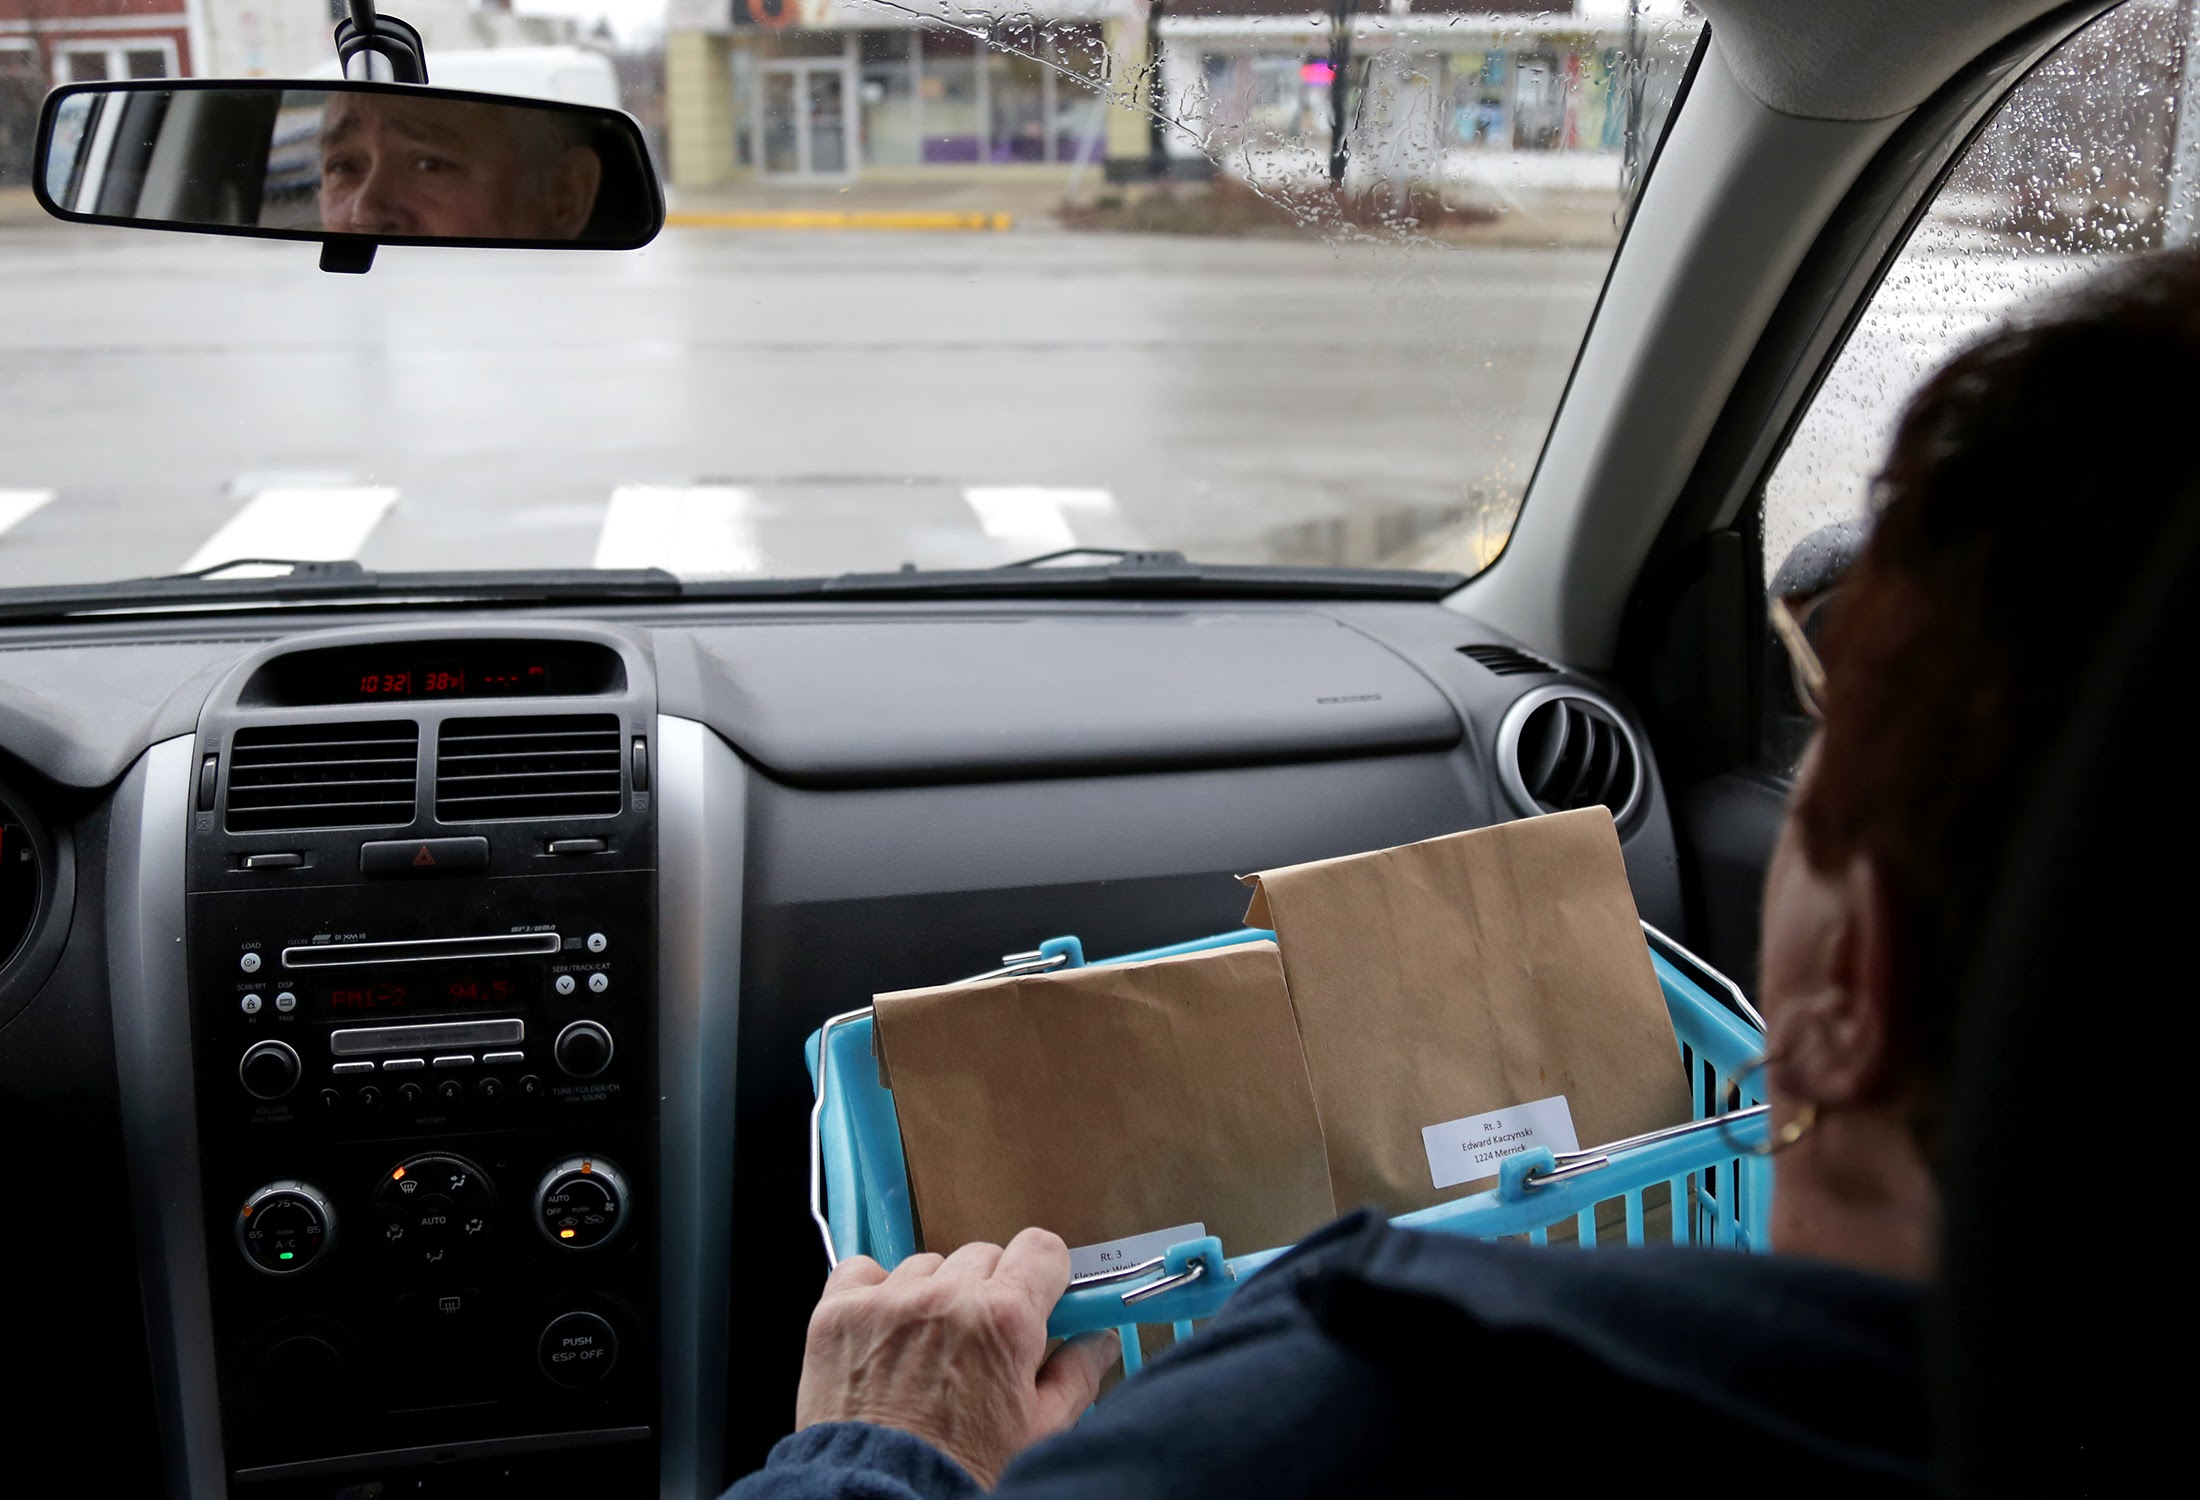 Randy and Roberta Nerone drive through Brookline while volunteering for Meals on Wheels on Tuesday, Jan. 24, 2017. Randy has been volunteering with the organization for about 15 years while his wife, Roberta, has given 20 years of service. They typically deliver meals to six to eight people on their route. (Photo by Guy Wathen/PublicSource)